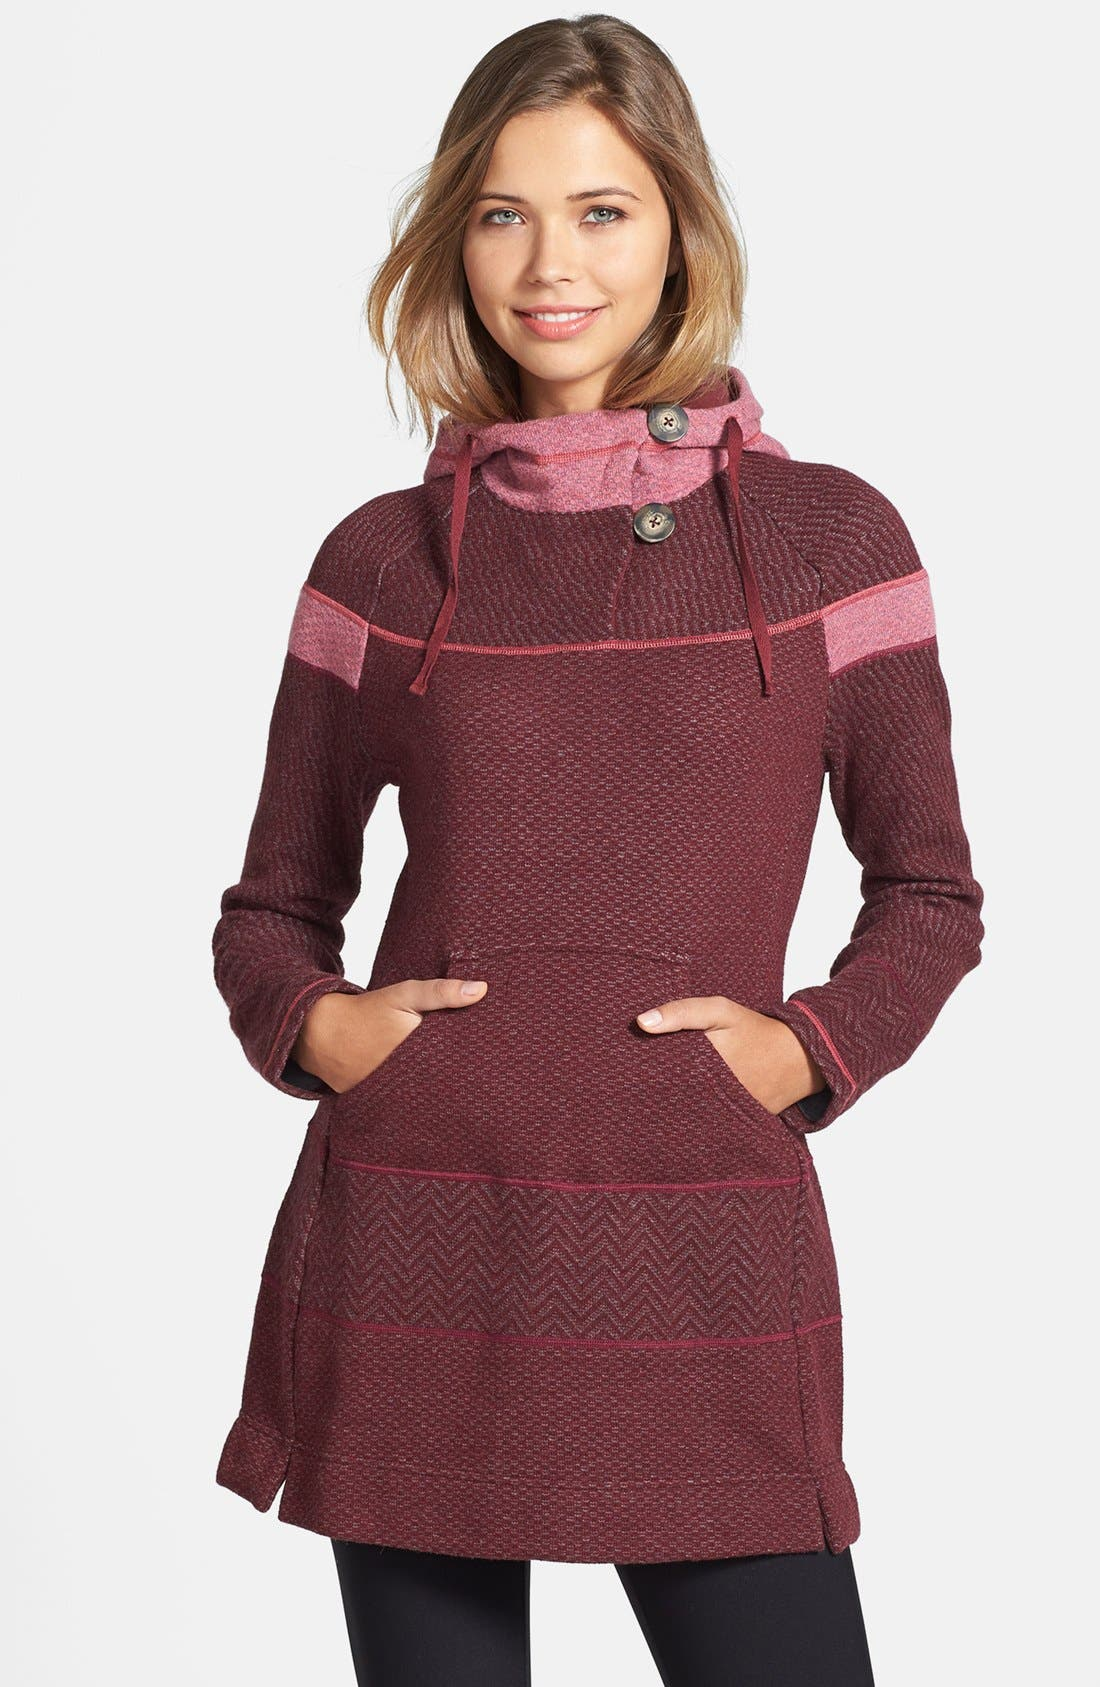 Main Image - prAna 'Caitlyn' Sweater